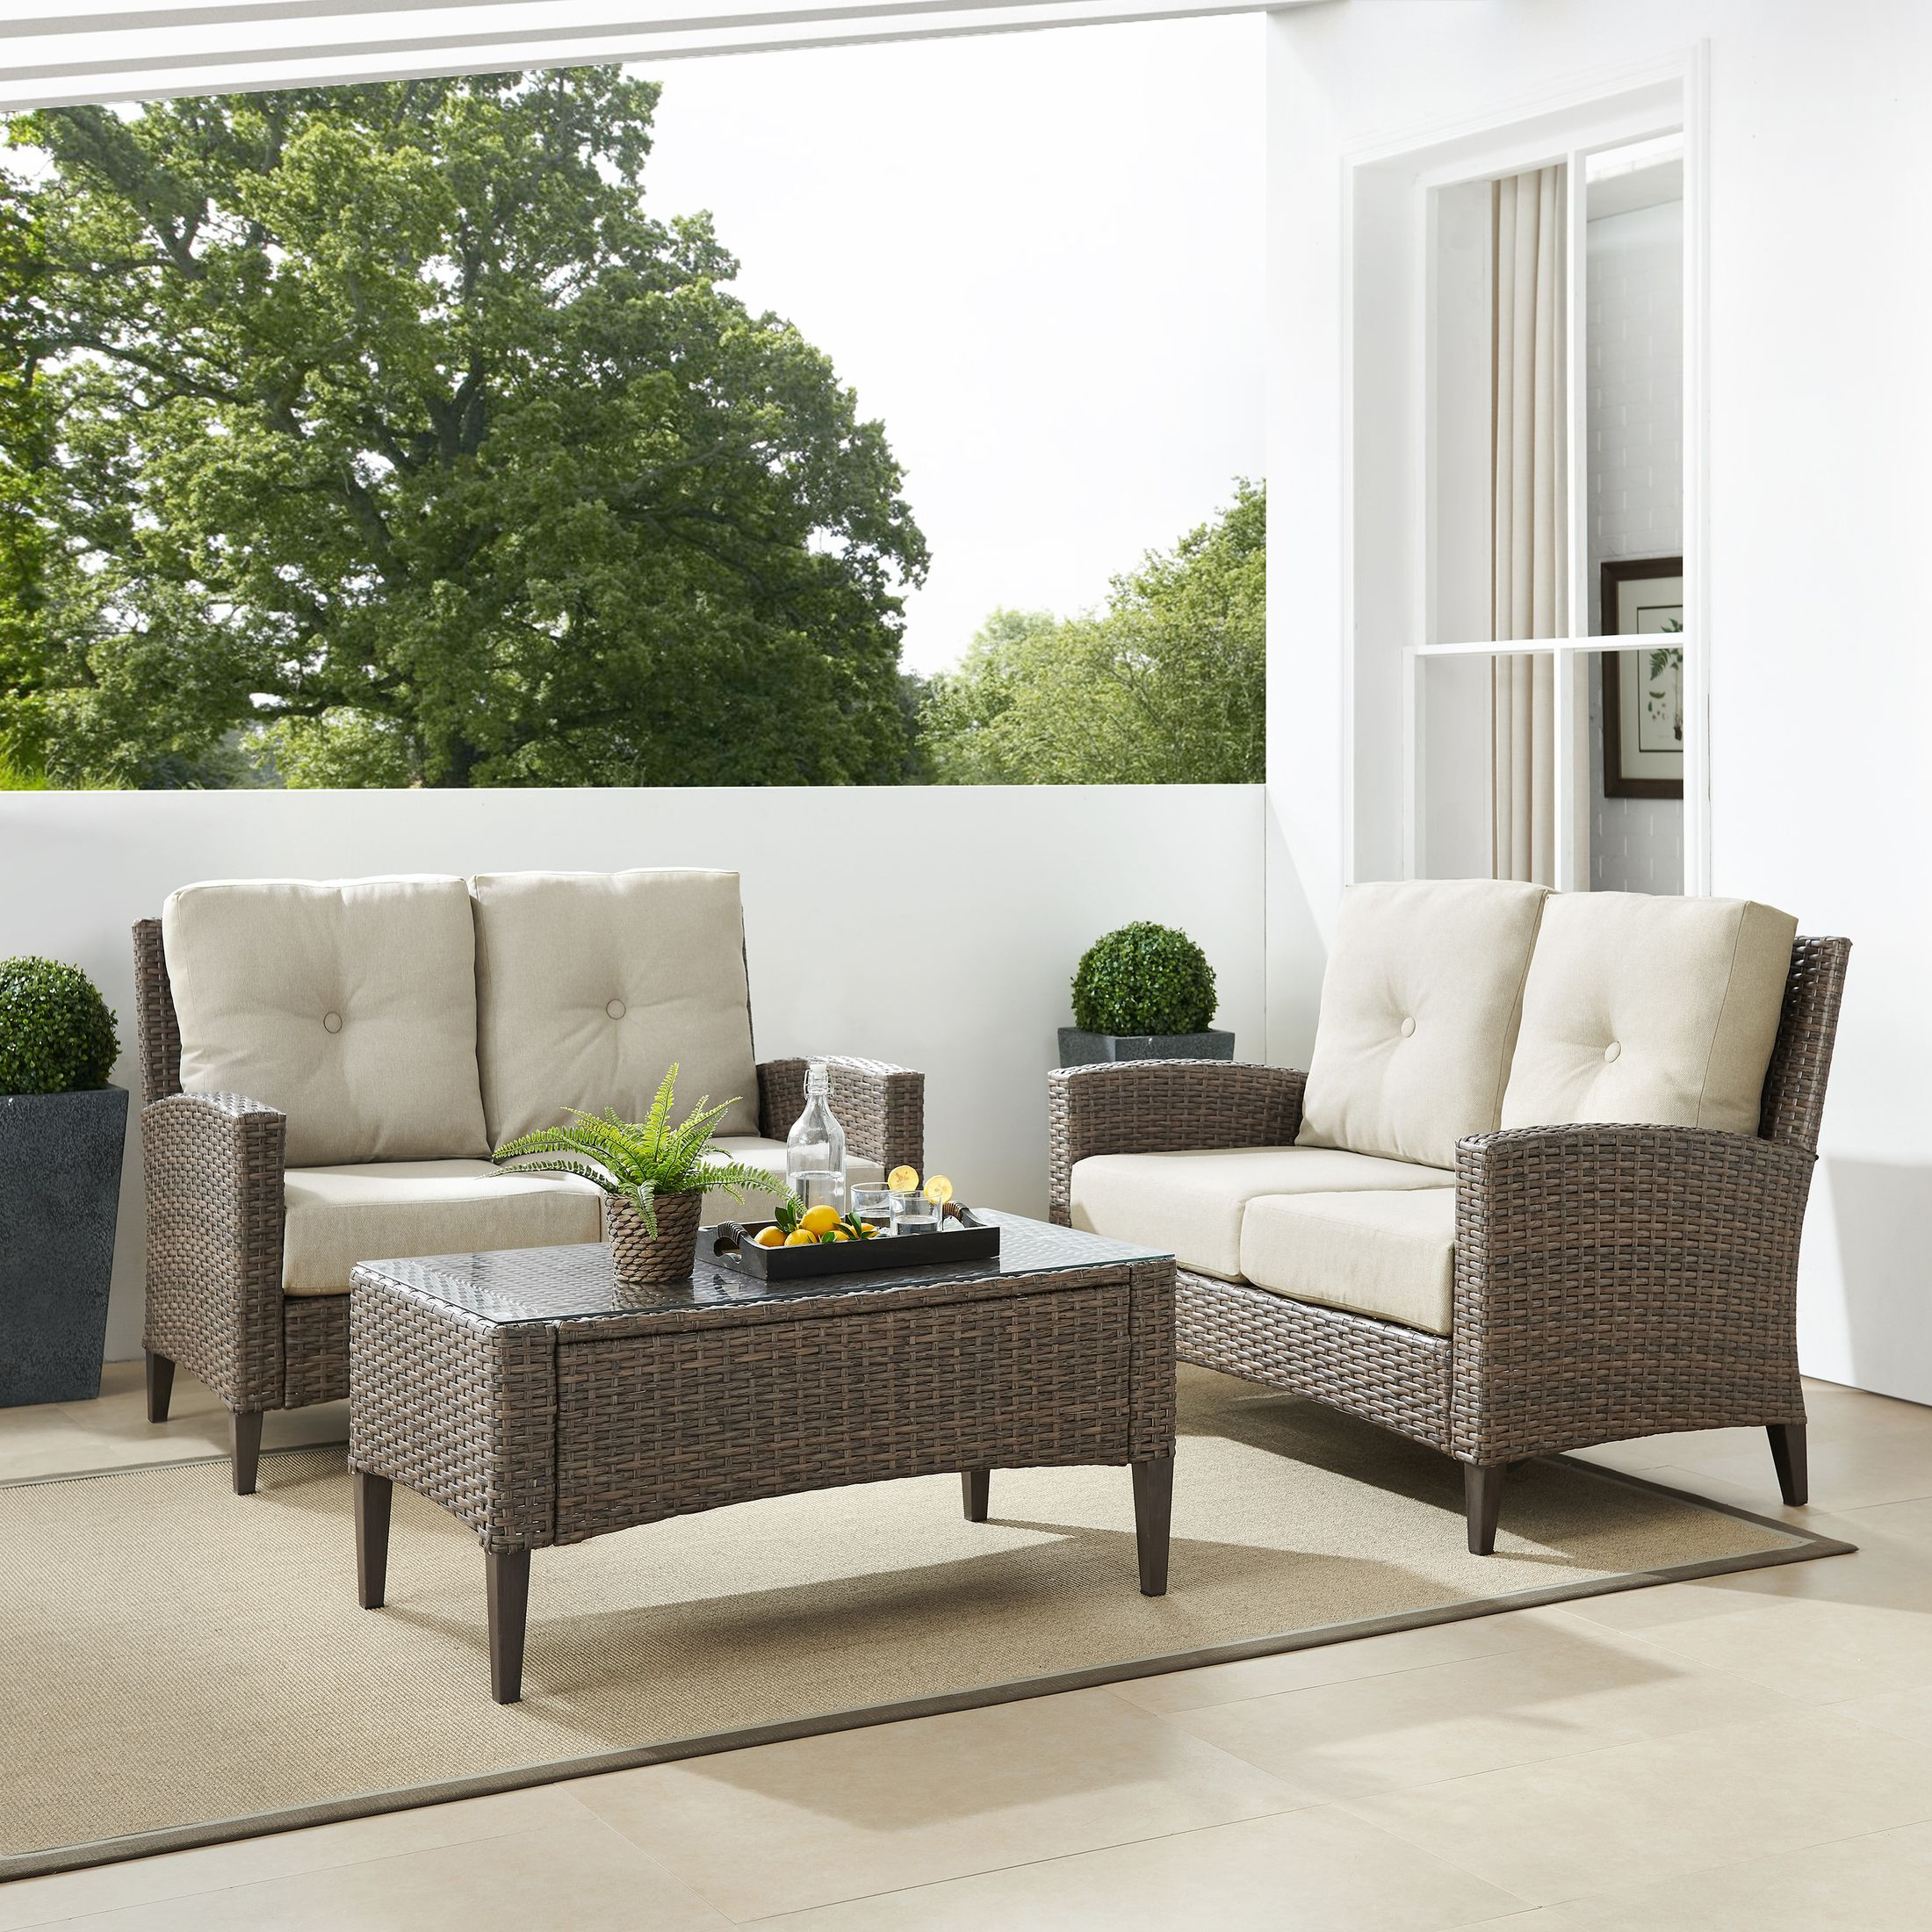 Outdoor Furniture - Huron Set of 2 Outdoor Loveseats and Coffee Table